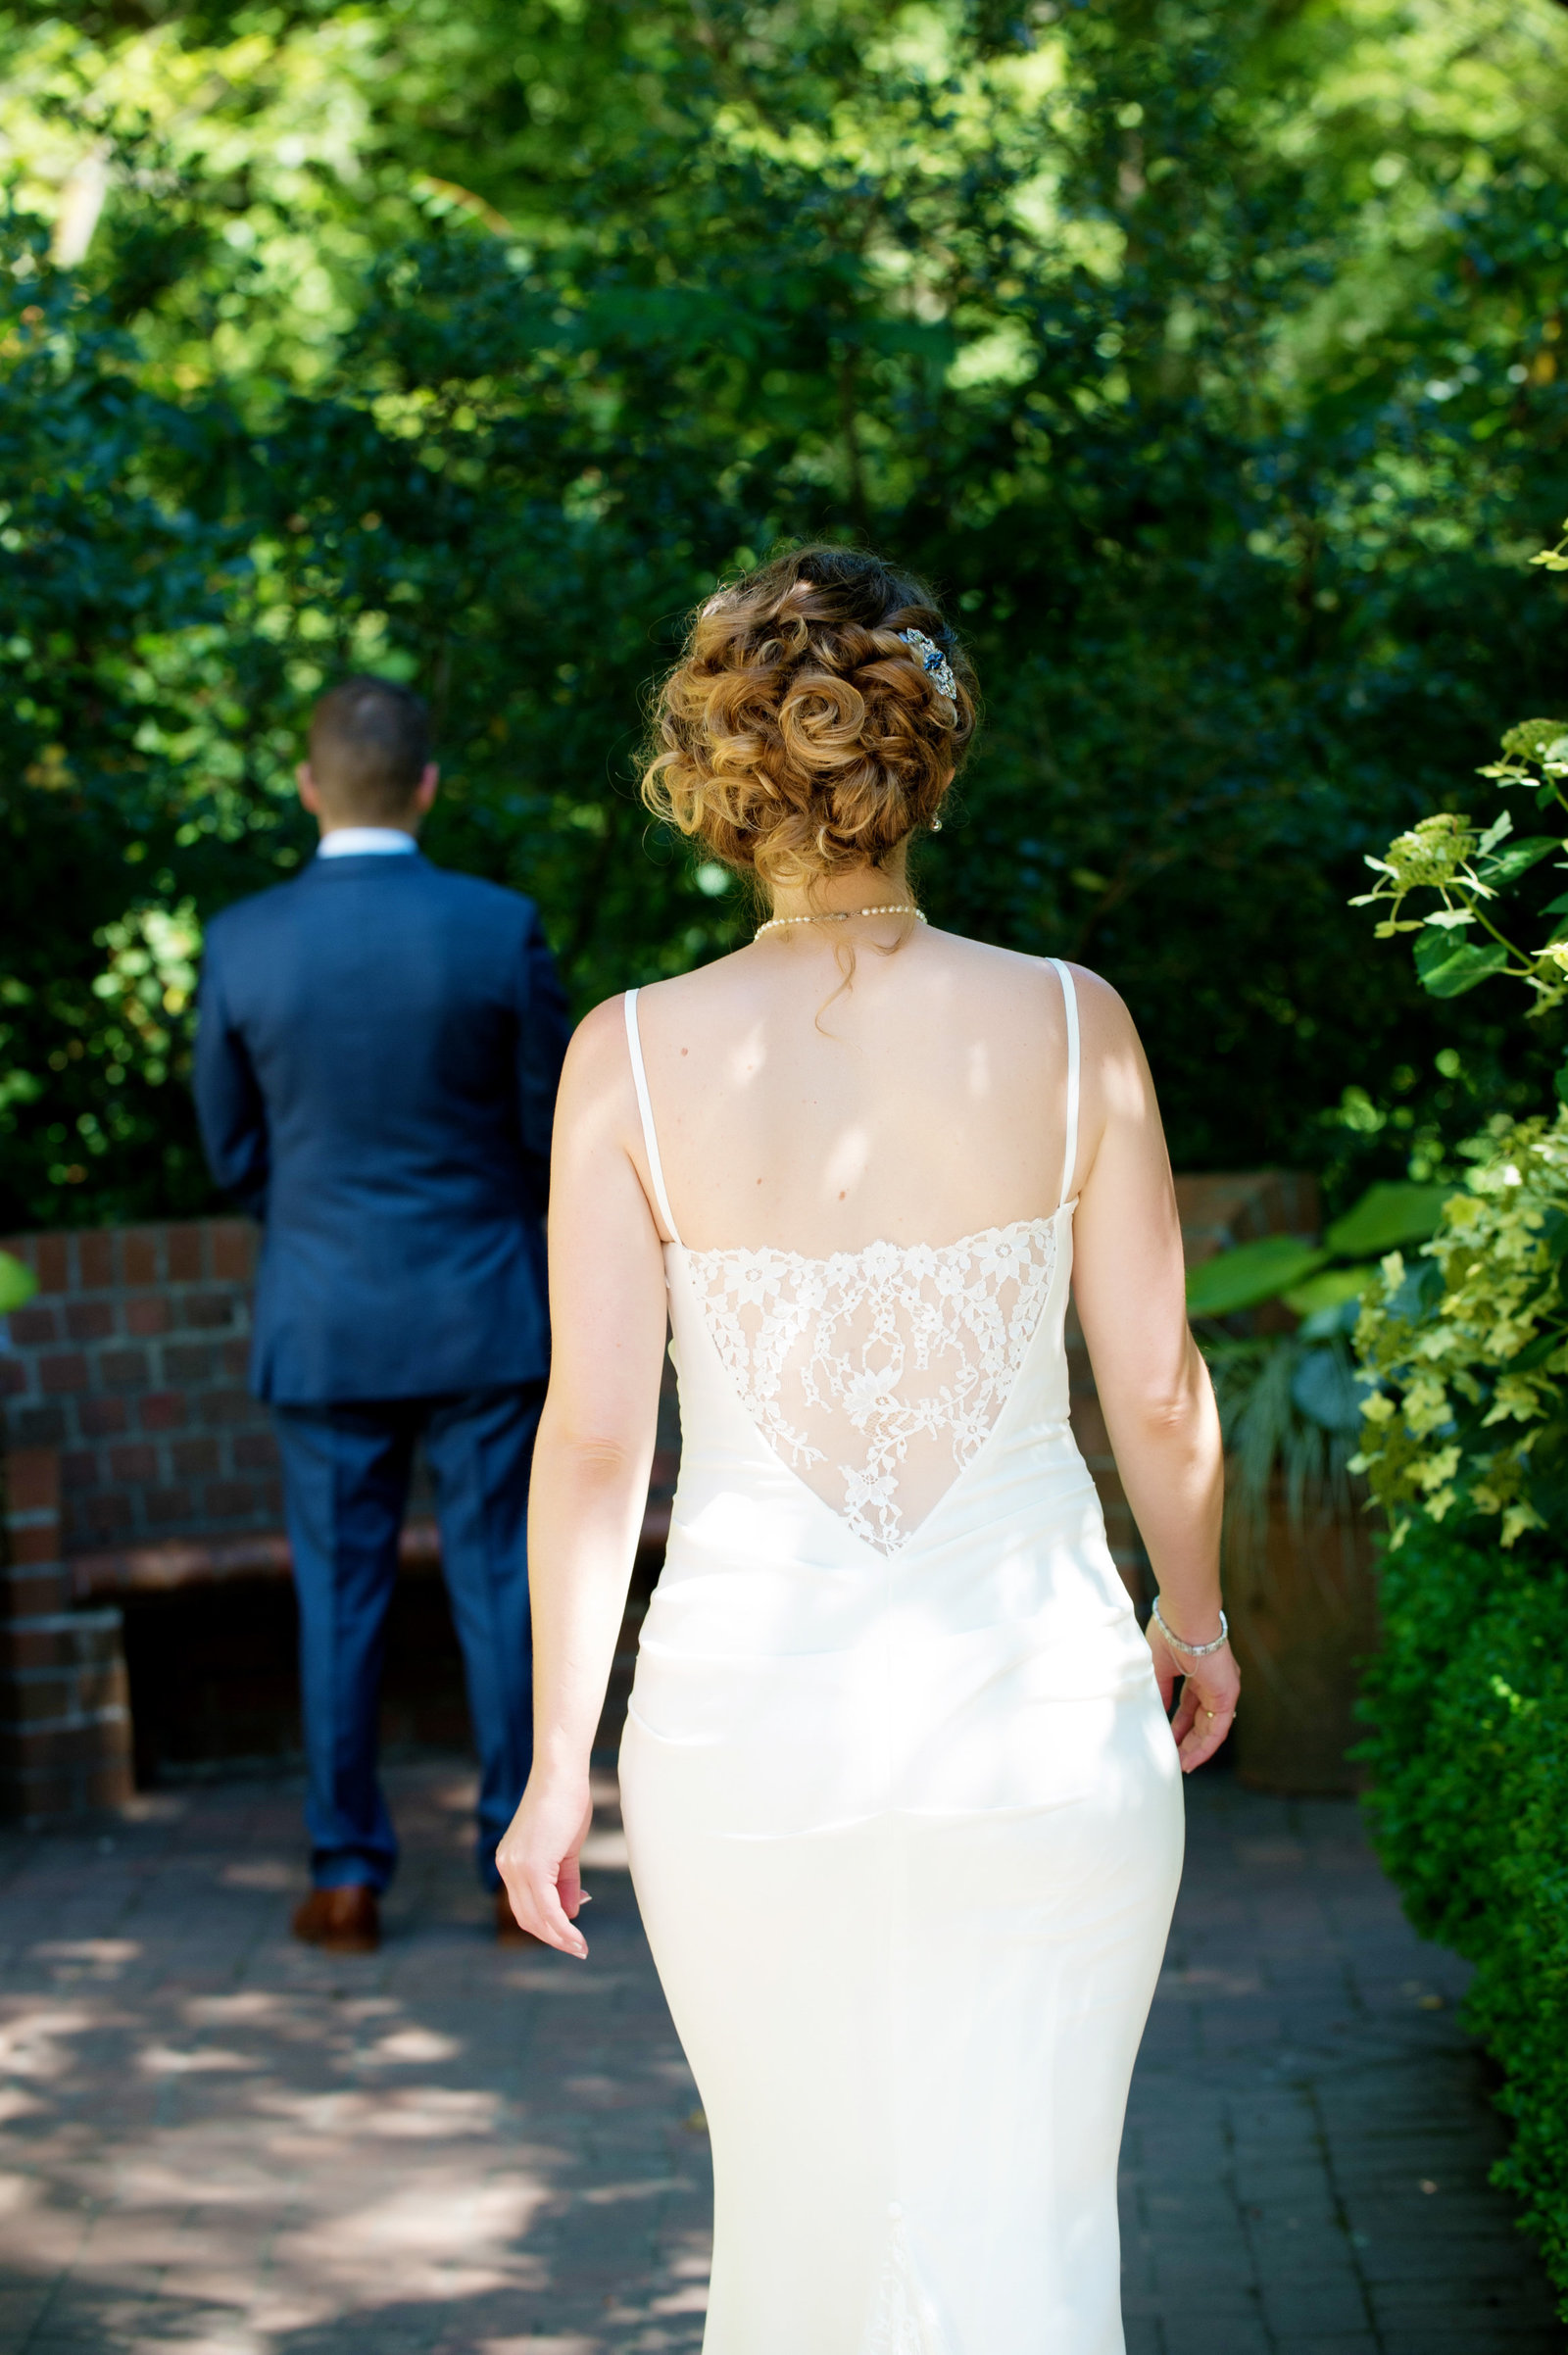 Crystal Genes Photography LEACH BOTANICAL GARDEN WEDDING_160806-150731